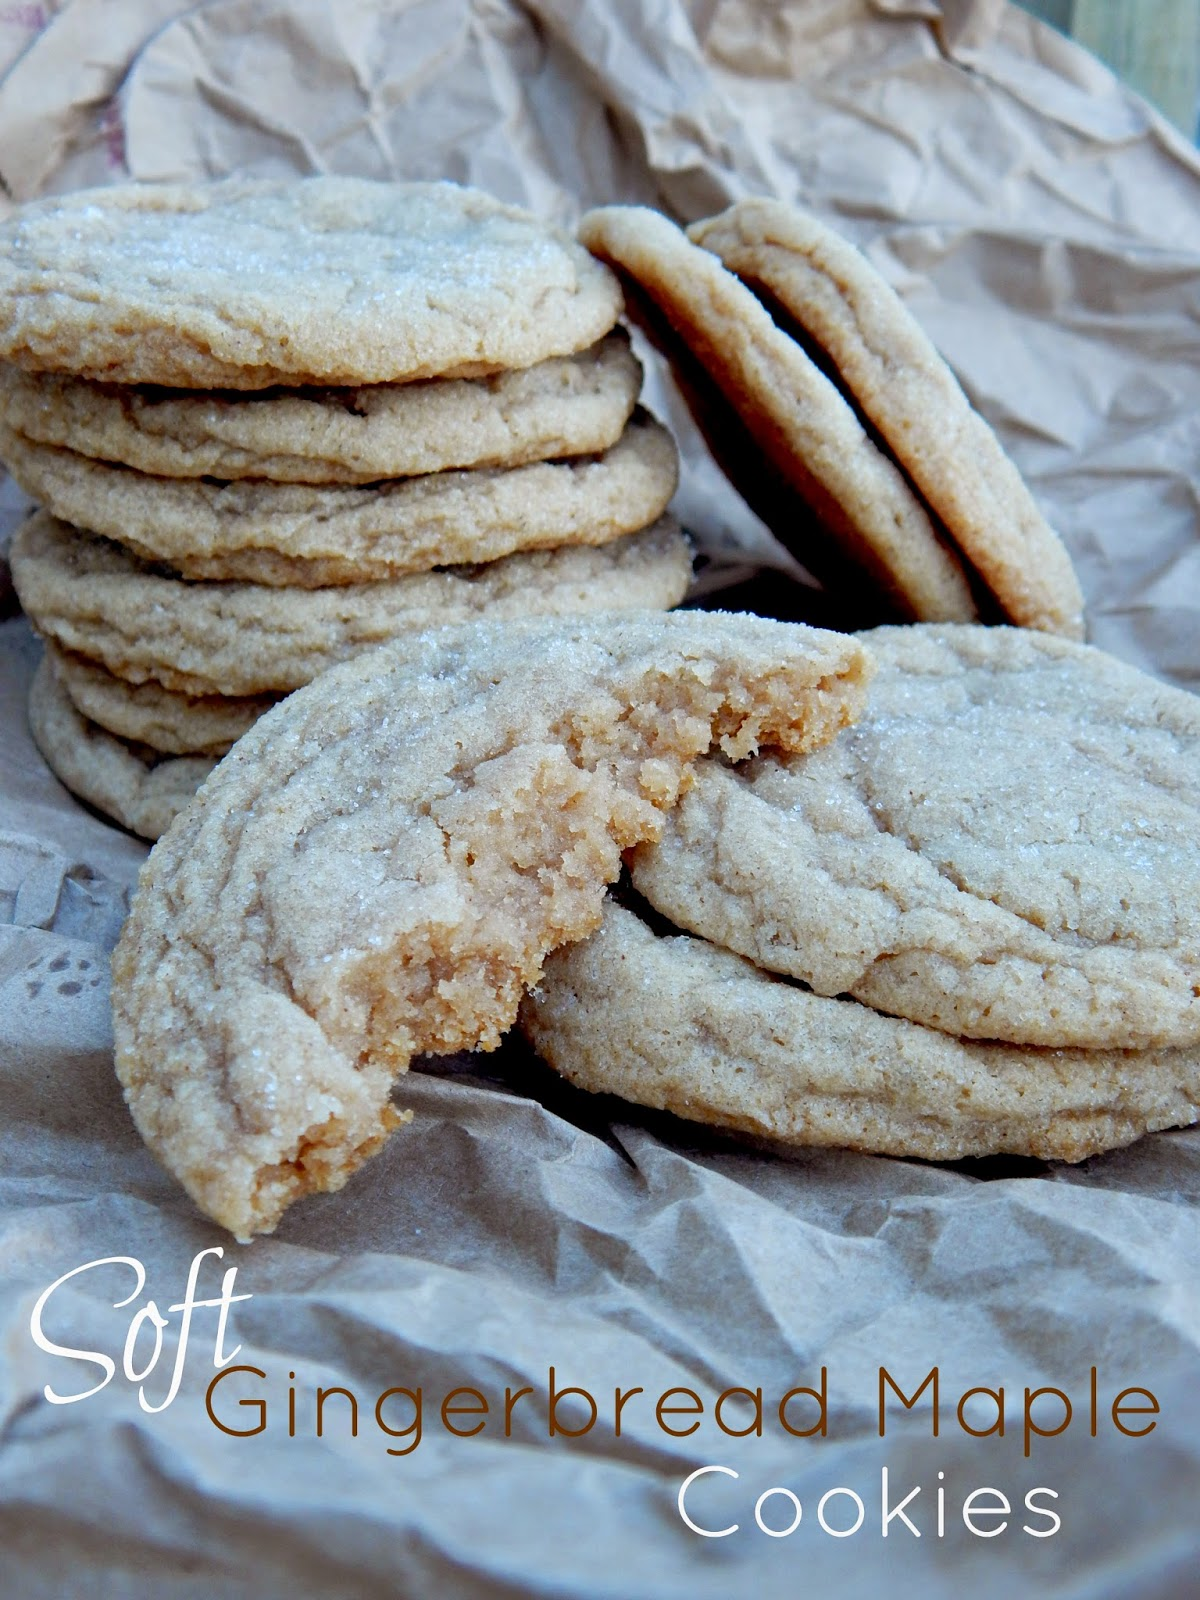 soft gingerbread maple cookies (sweetandsavoryfood.com)